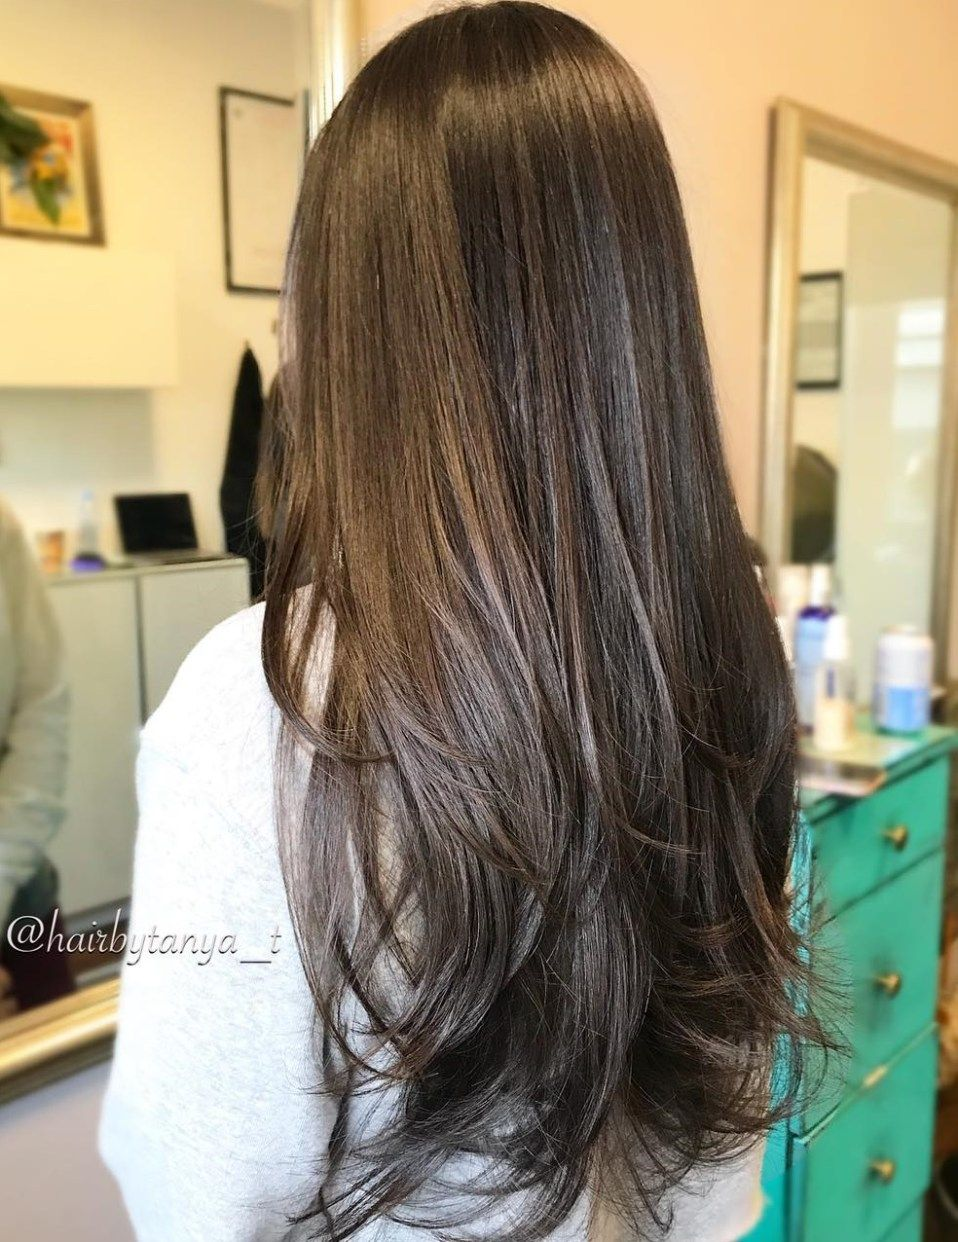 16+ Haircuts for long thin fine hair trends